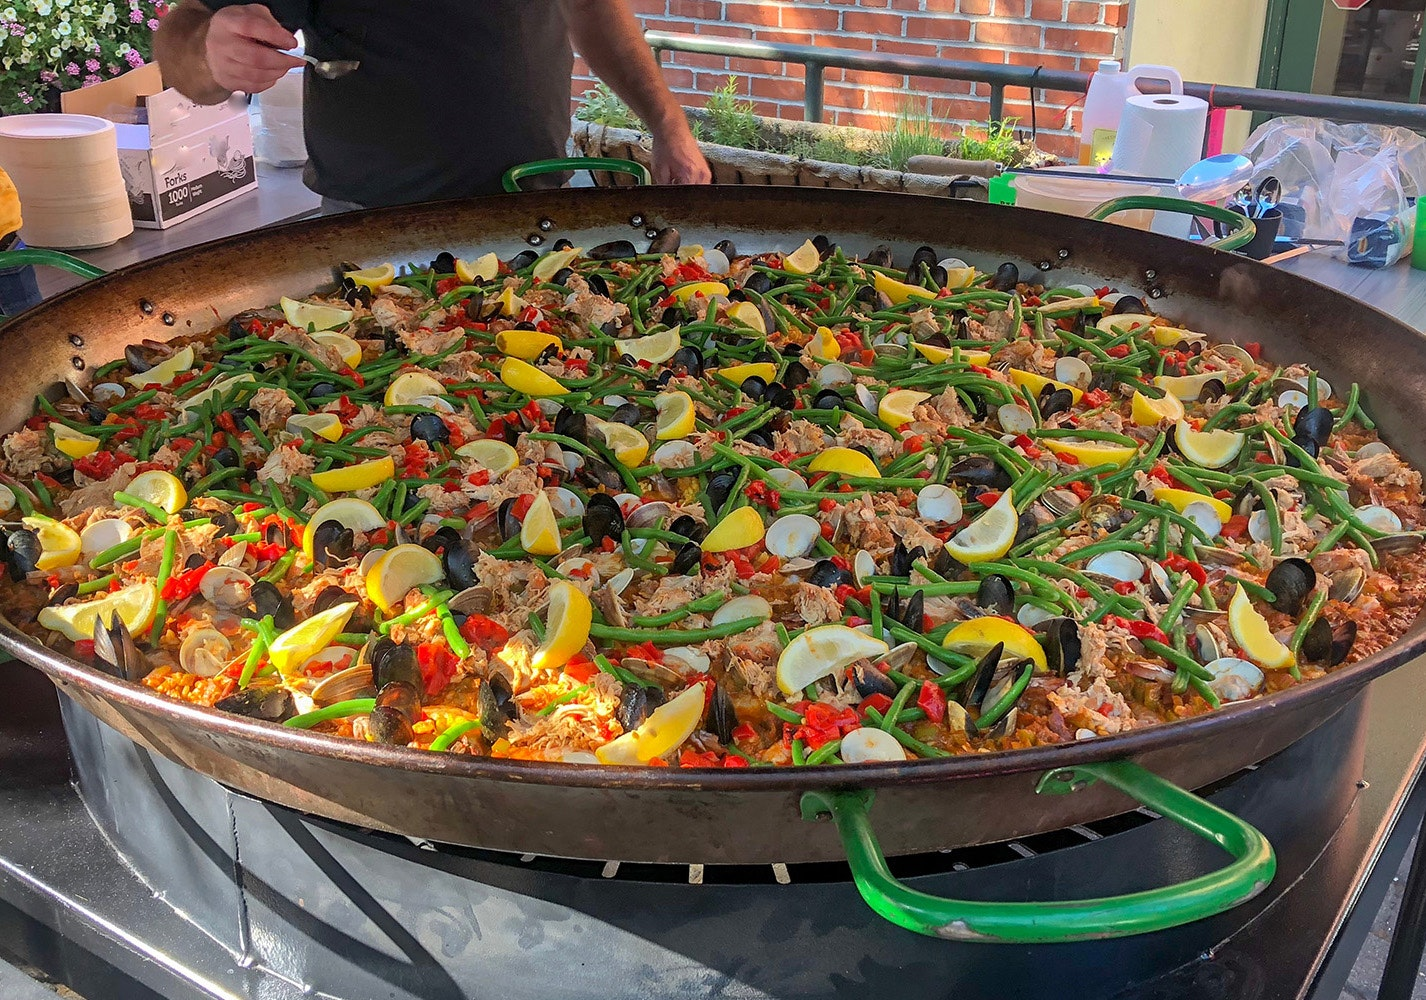 Dig into some Basque-style paella, served outside Boise's Basque Market on select days.